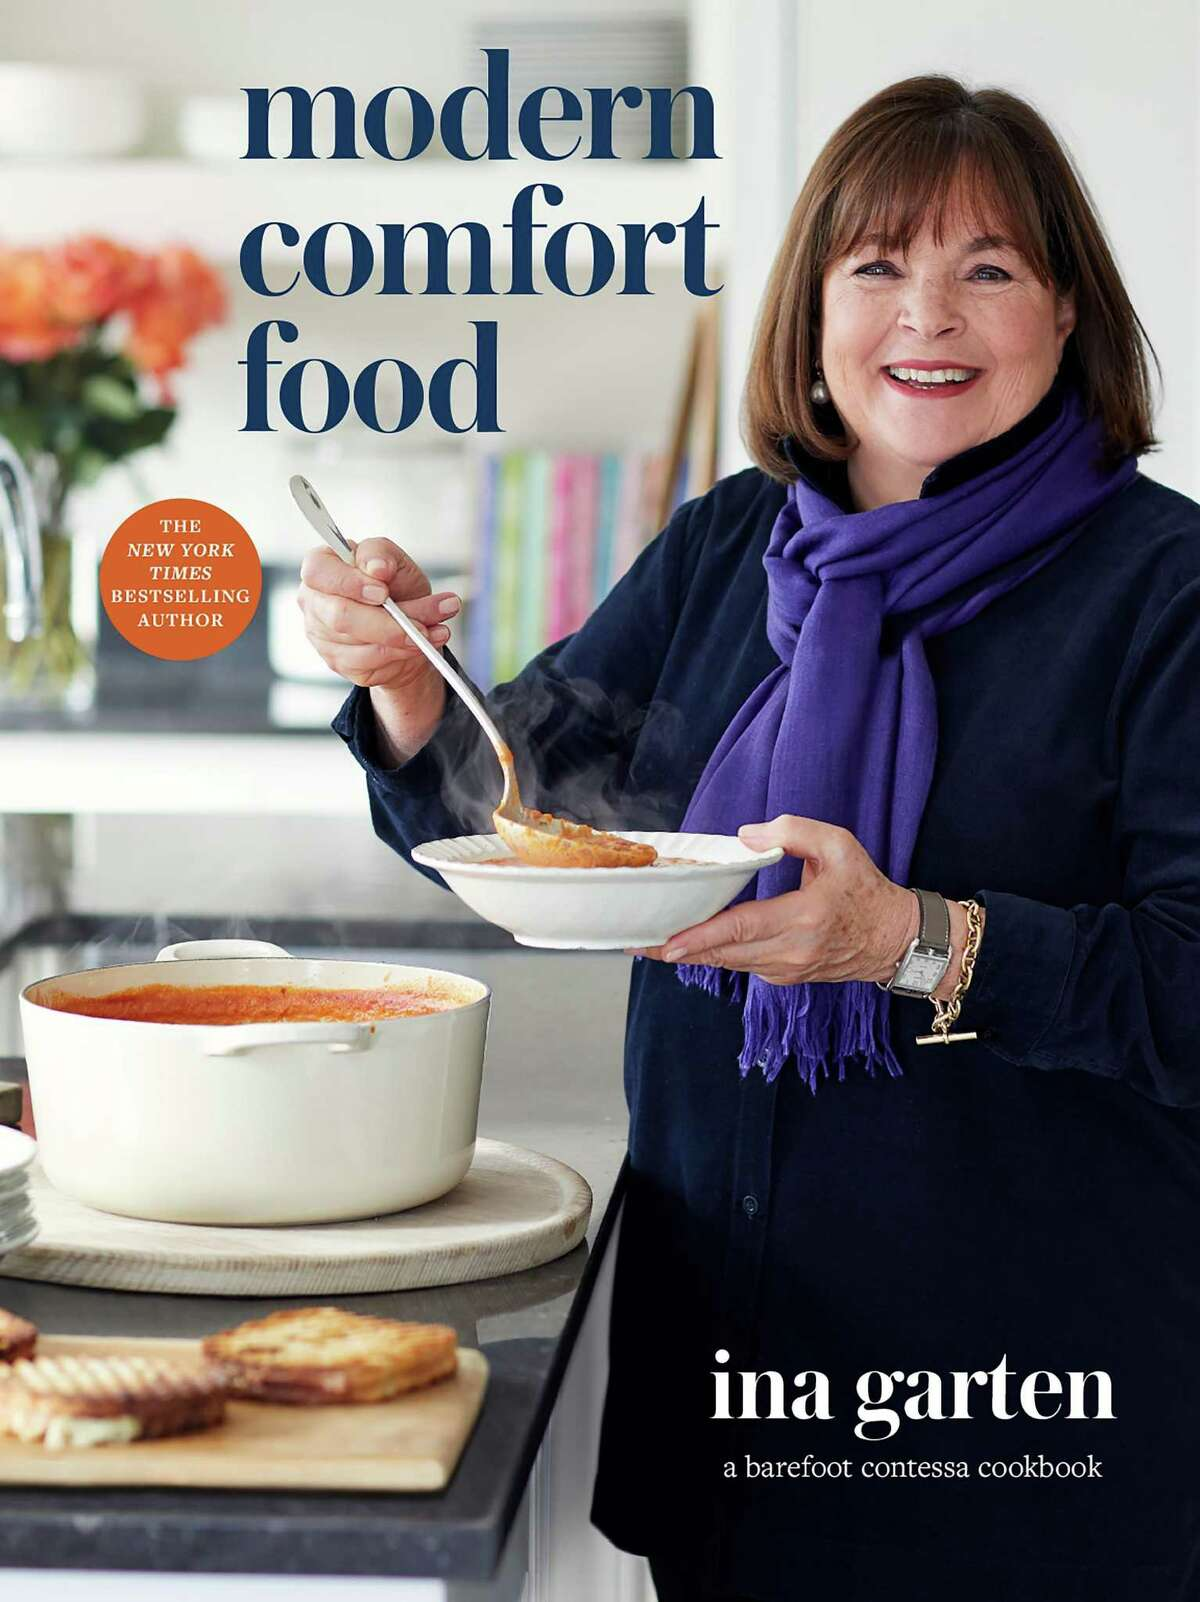 """""""Modern Comfort Food"""" is Ina Garten's 12th cookbook. Published this week from Clarkson Potter, its recipes for easy, satisfying dishes are perfect for pandemic cooking, the author says."""